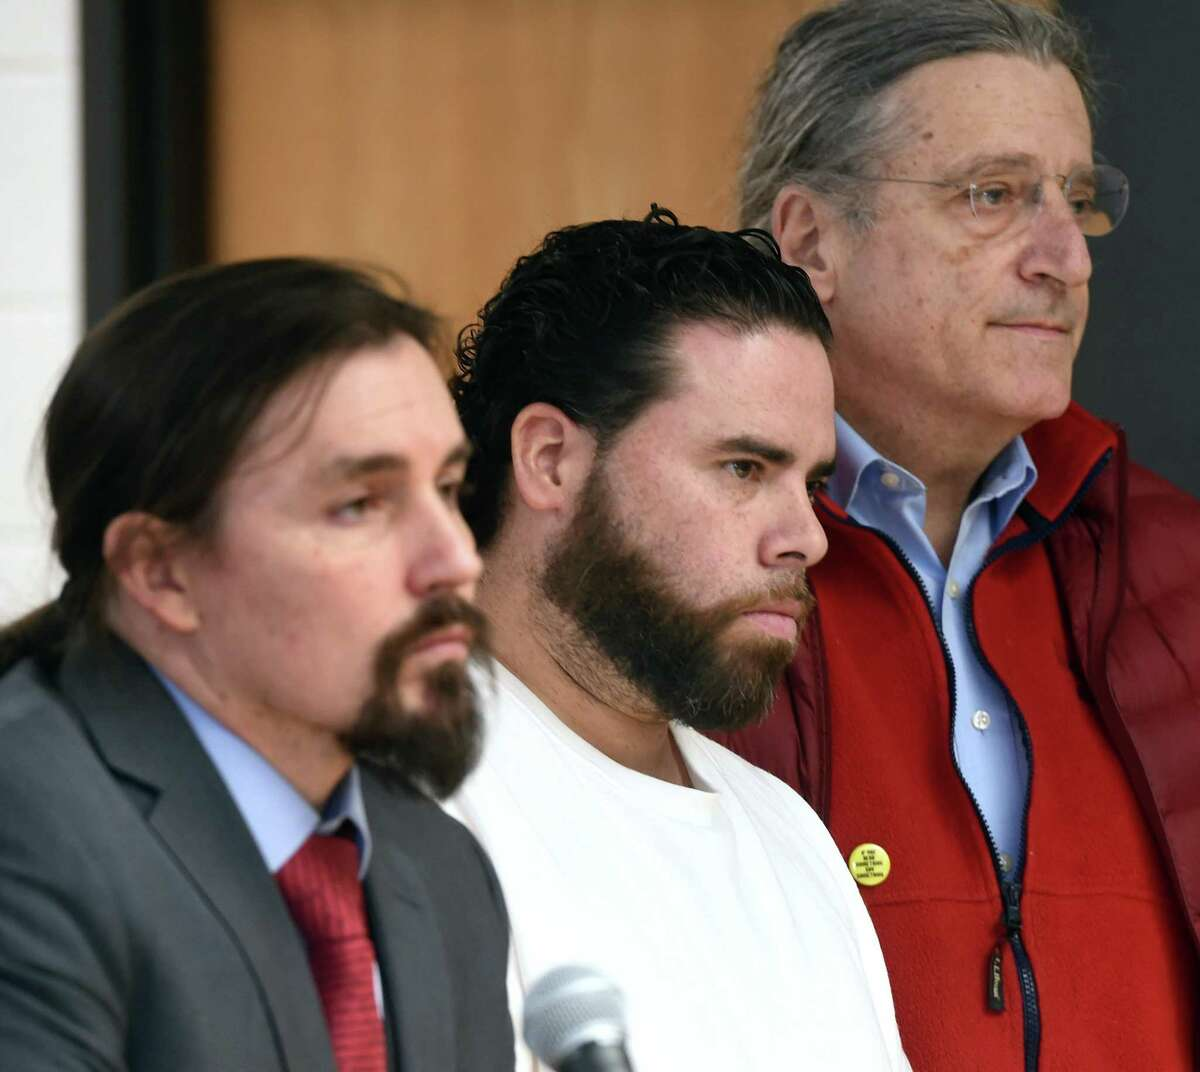 Jose Morales (center) appears for a bond hearing with attorneys Kevin Smith (left) and Norm Pattis at Derby Superior Courthouse on Thursday.